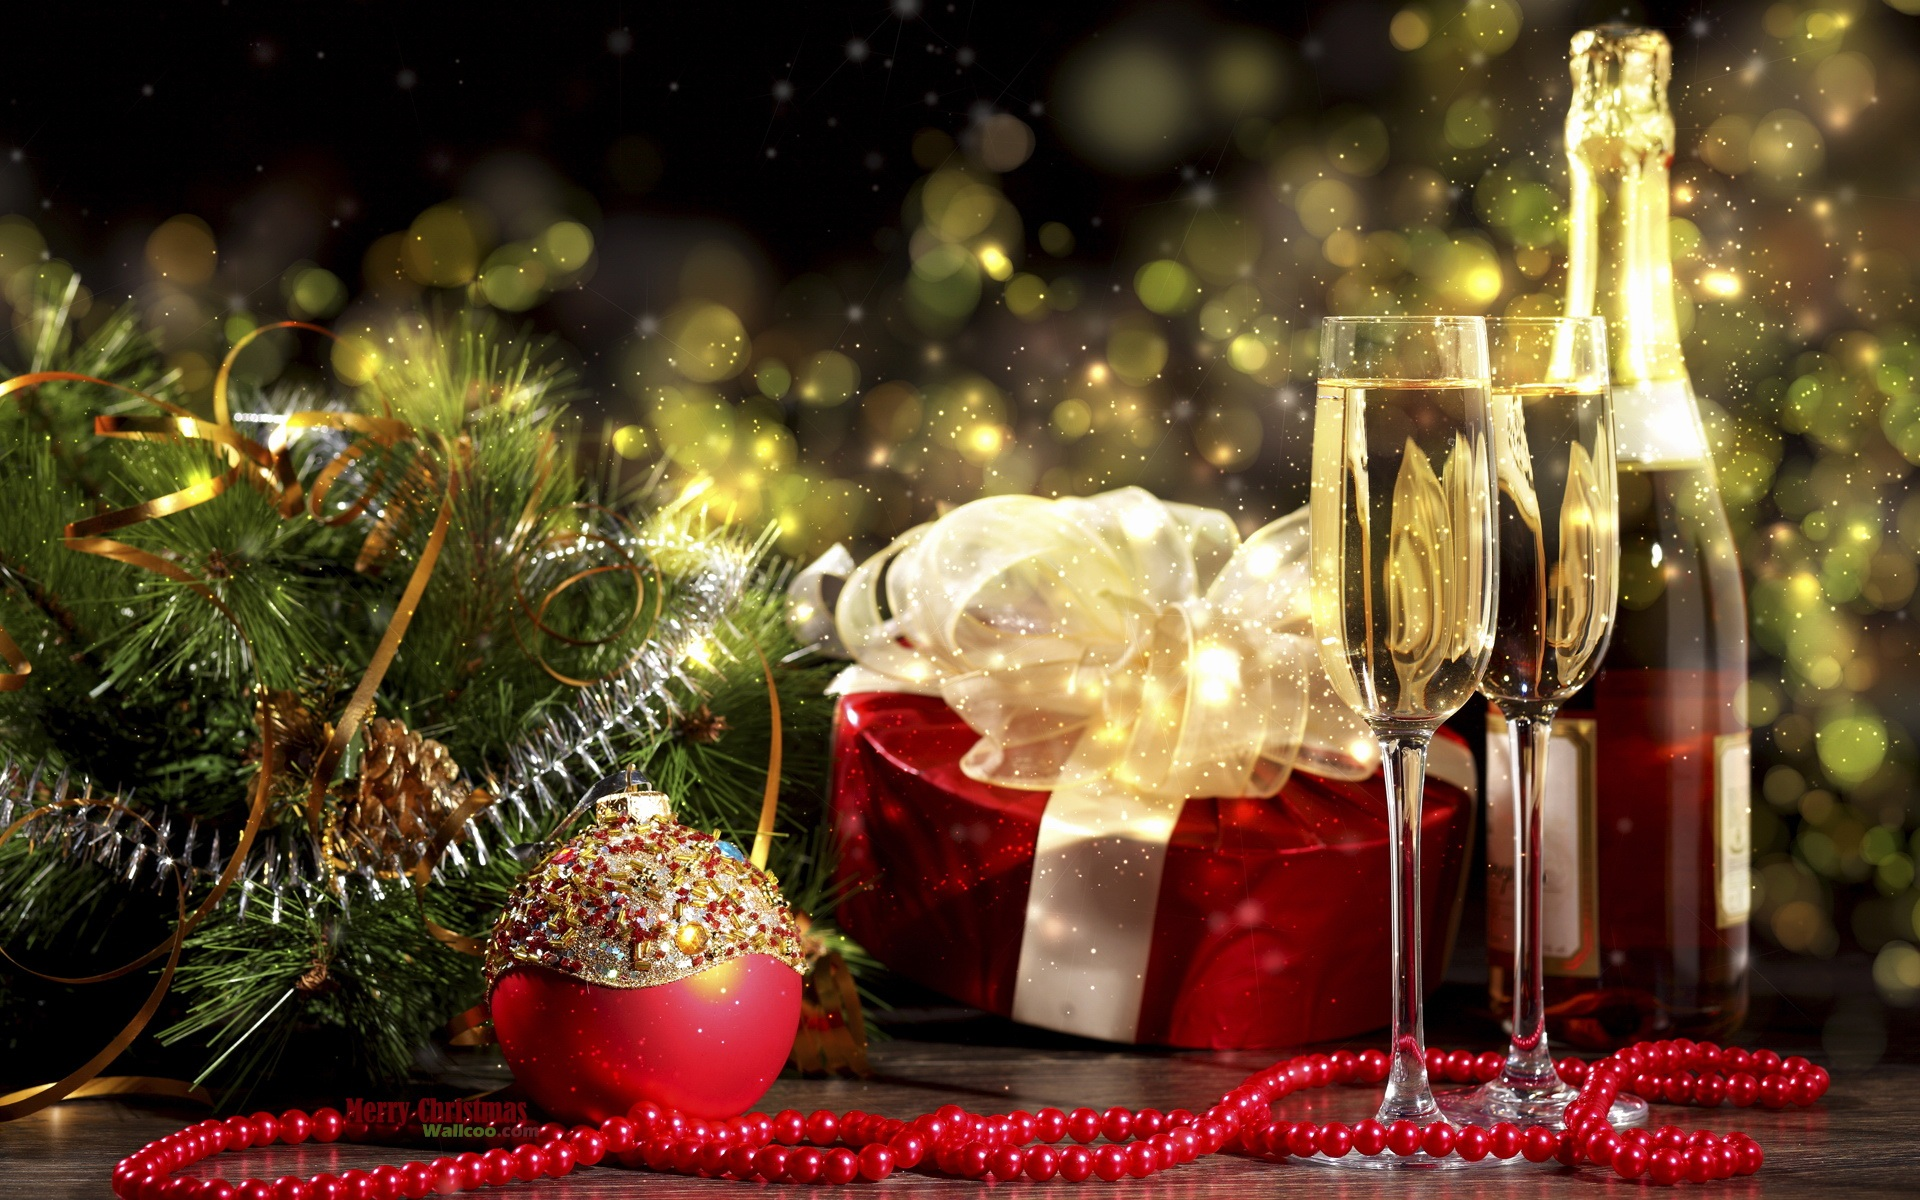 Christmas decoration theme wallpaper 51378